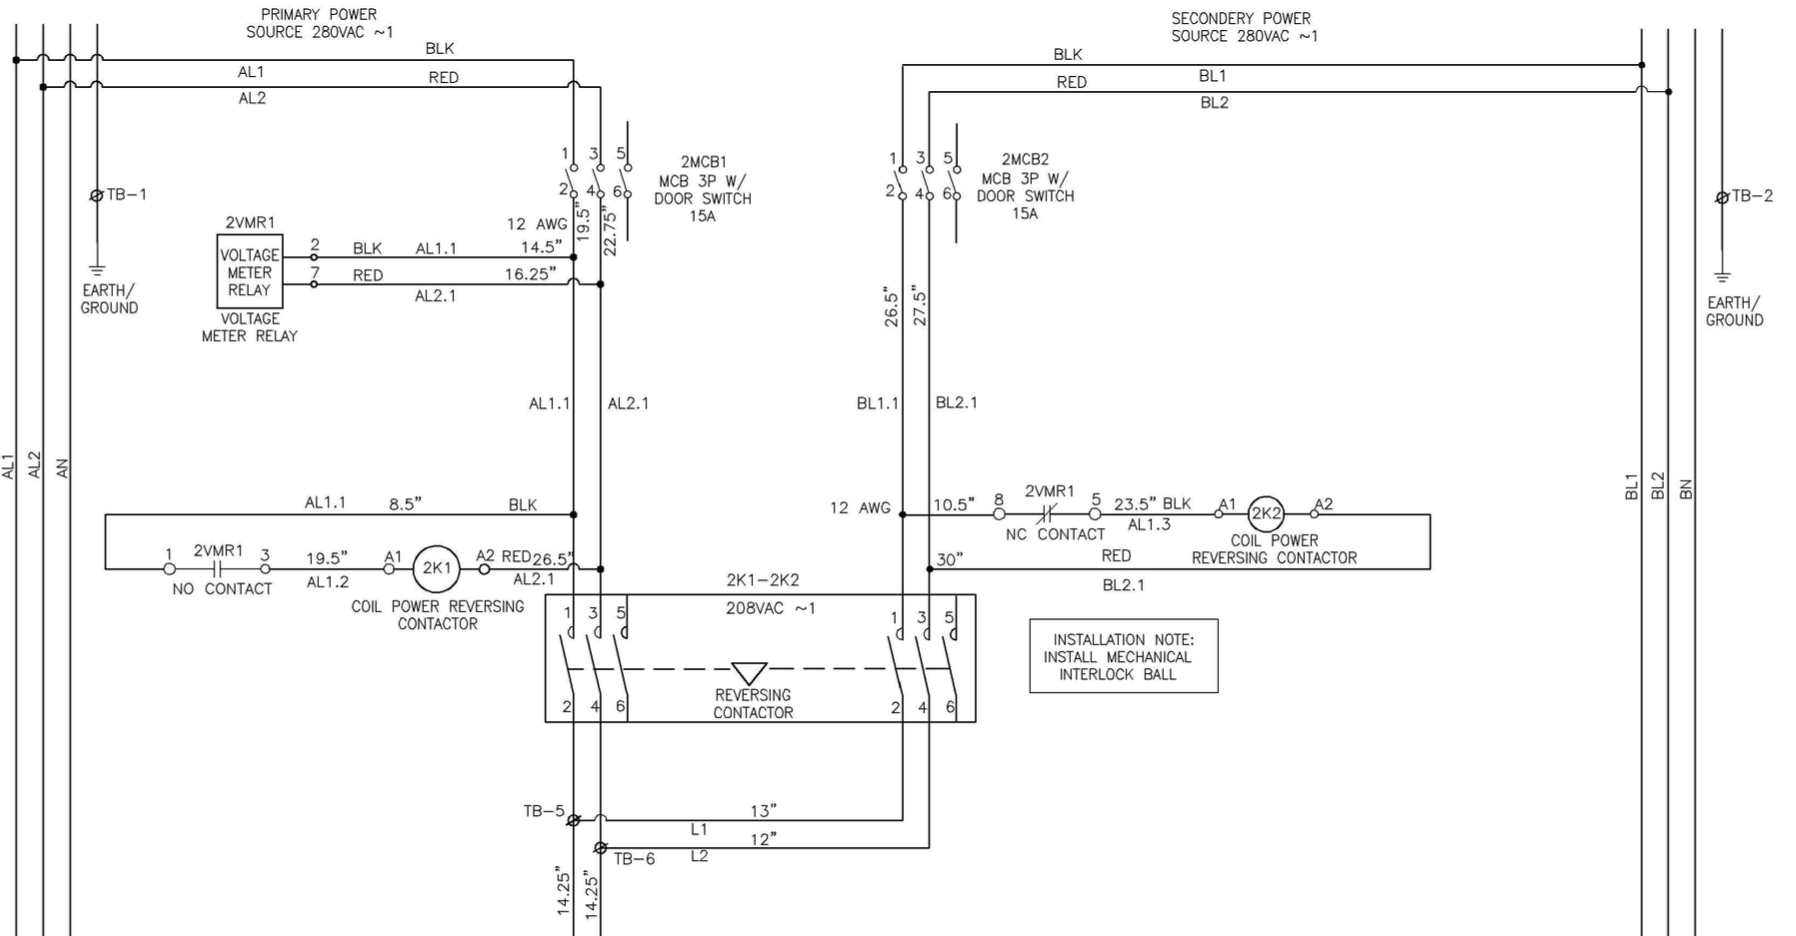 hight resolution of 208vac redundant power